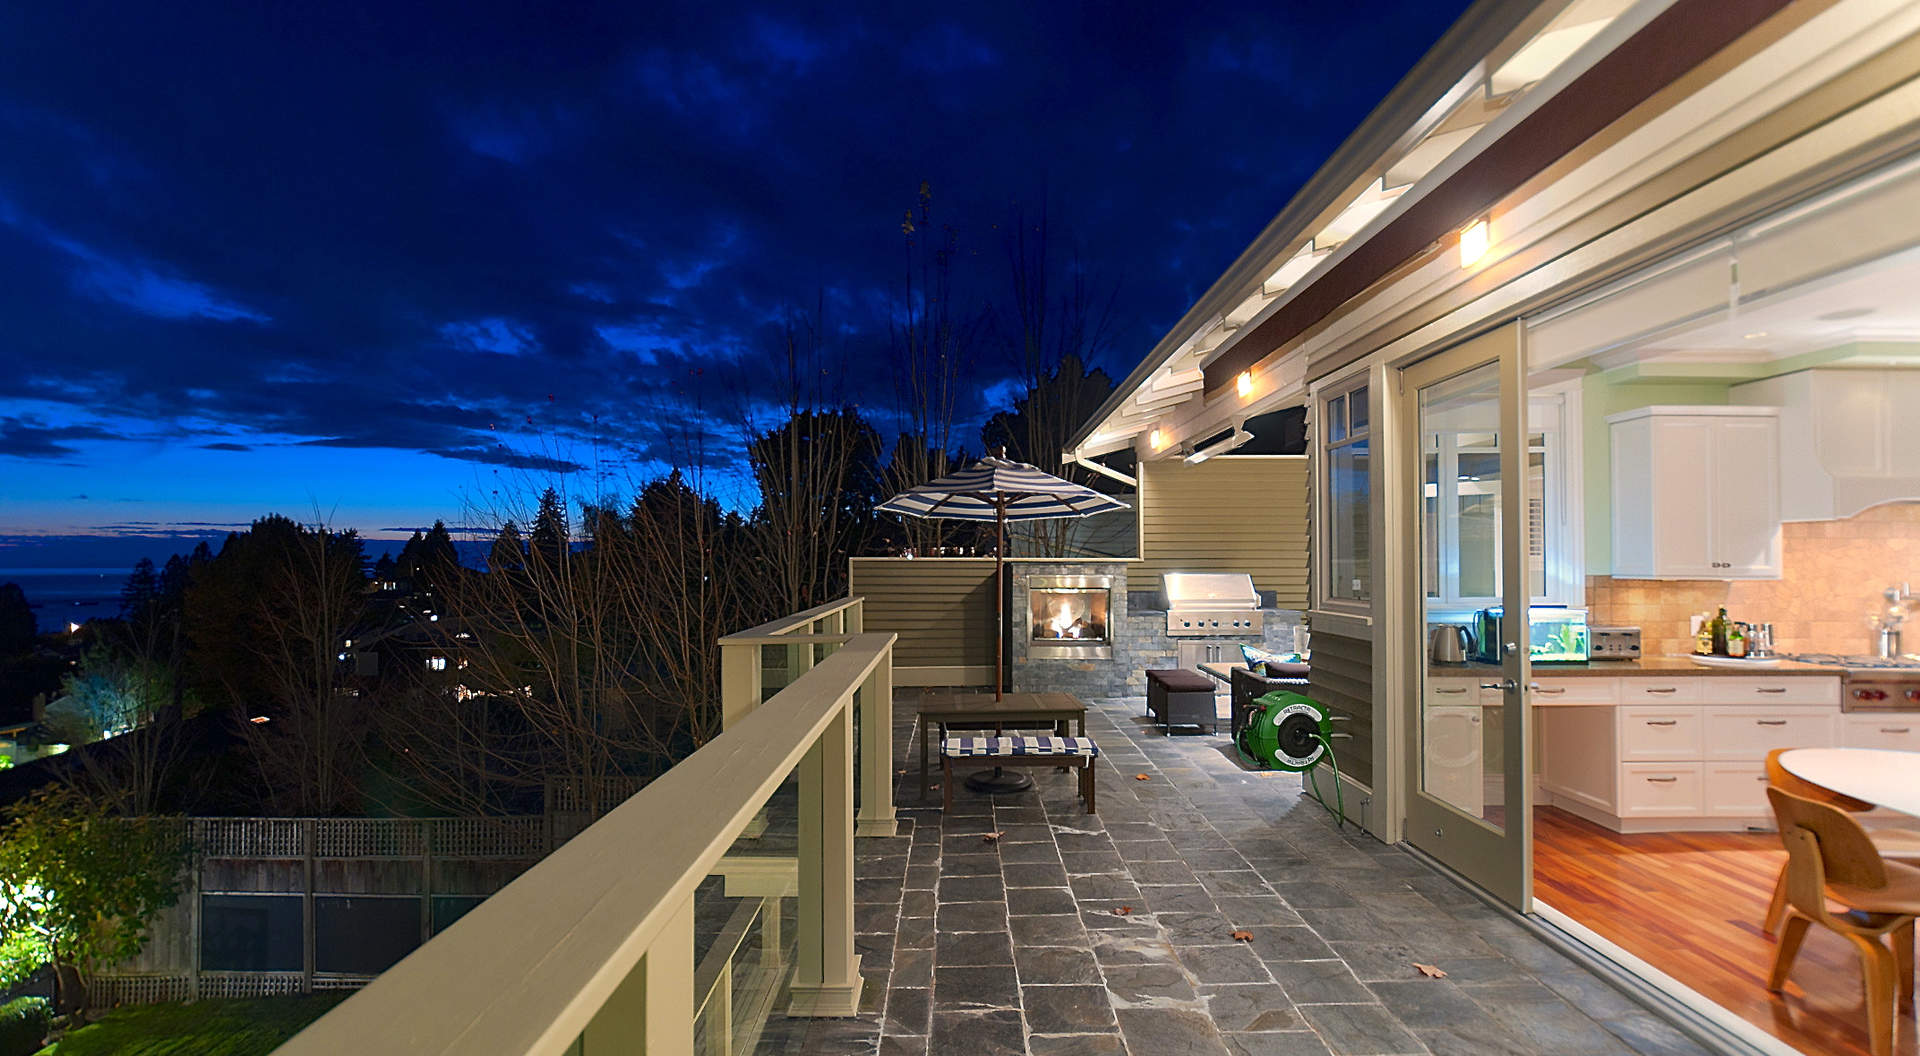 Large Sundeck Overlooking the South Facing Backyard